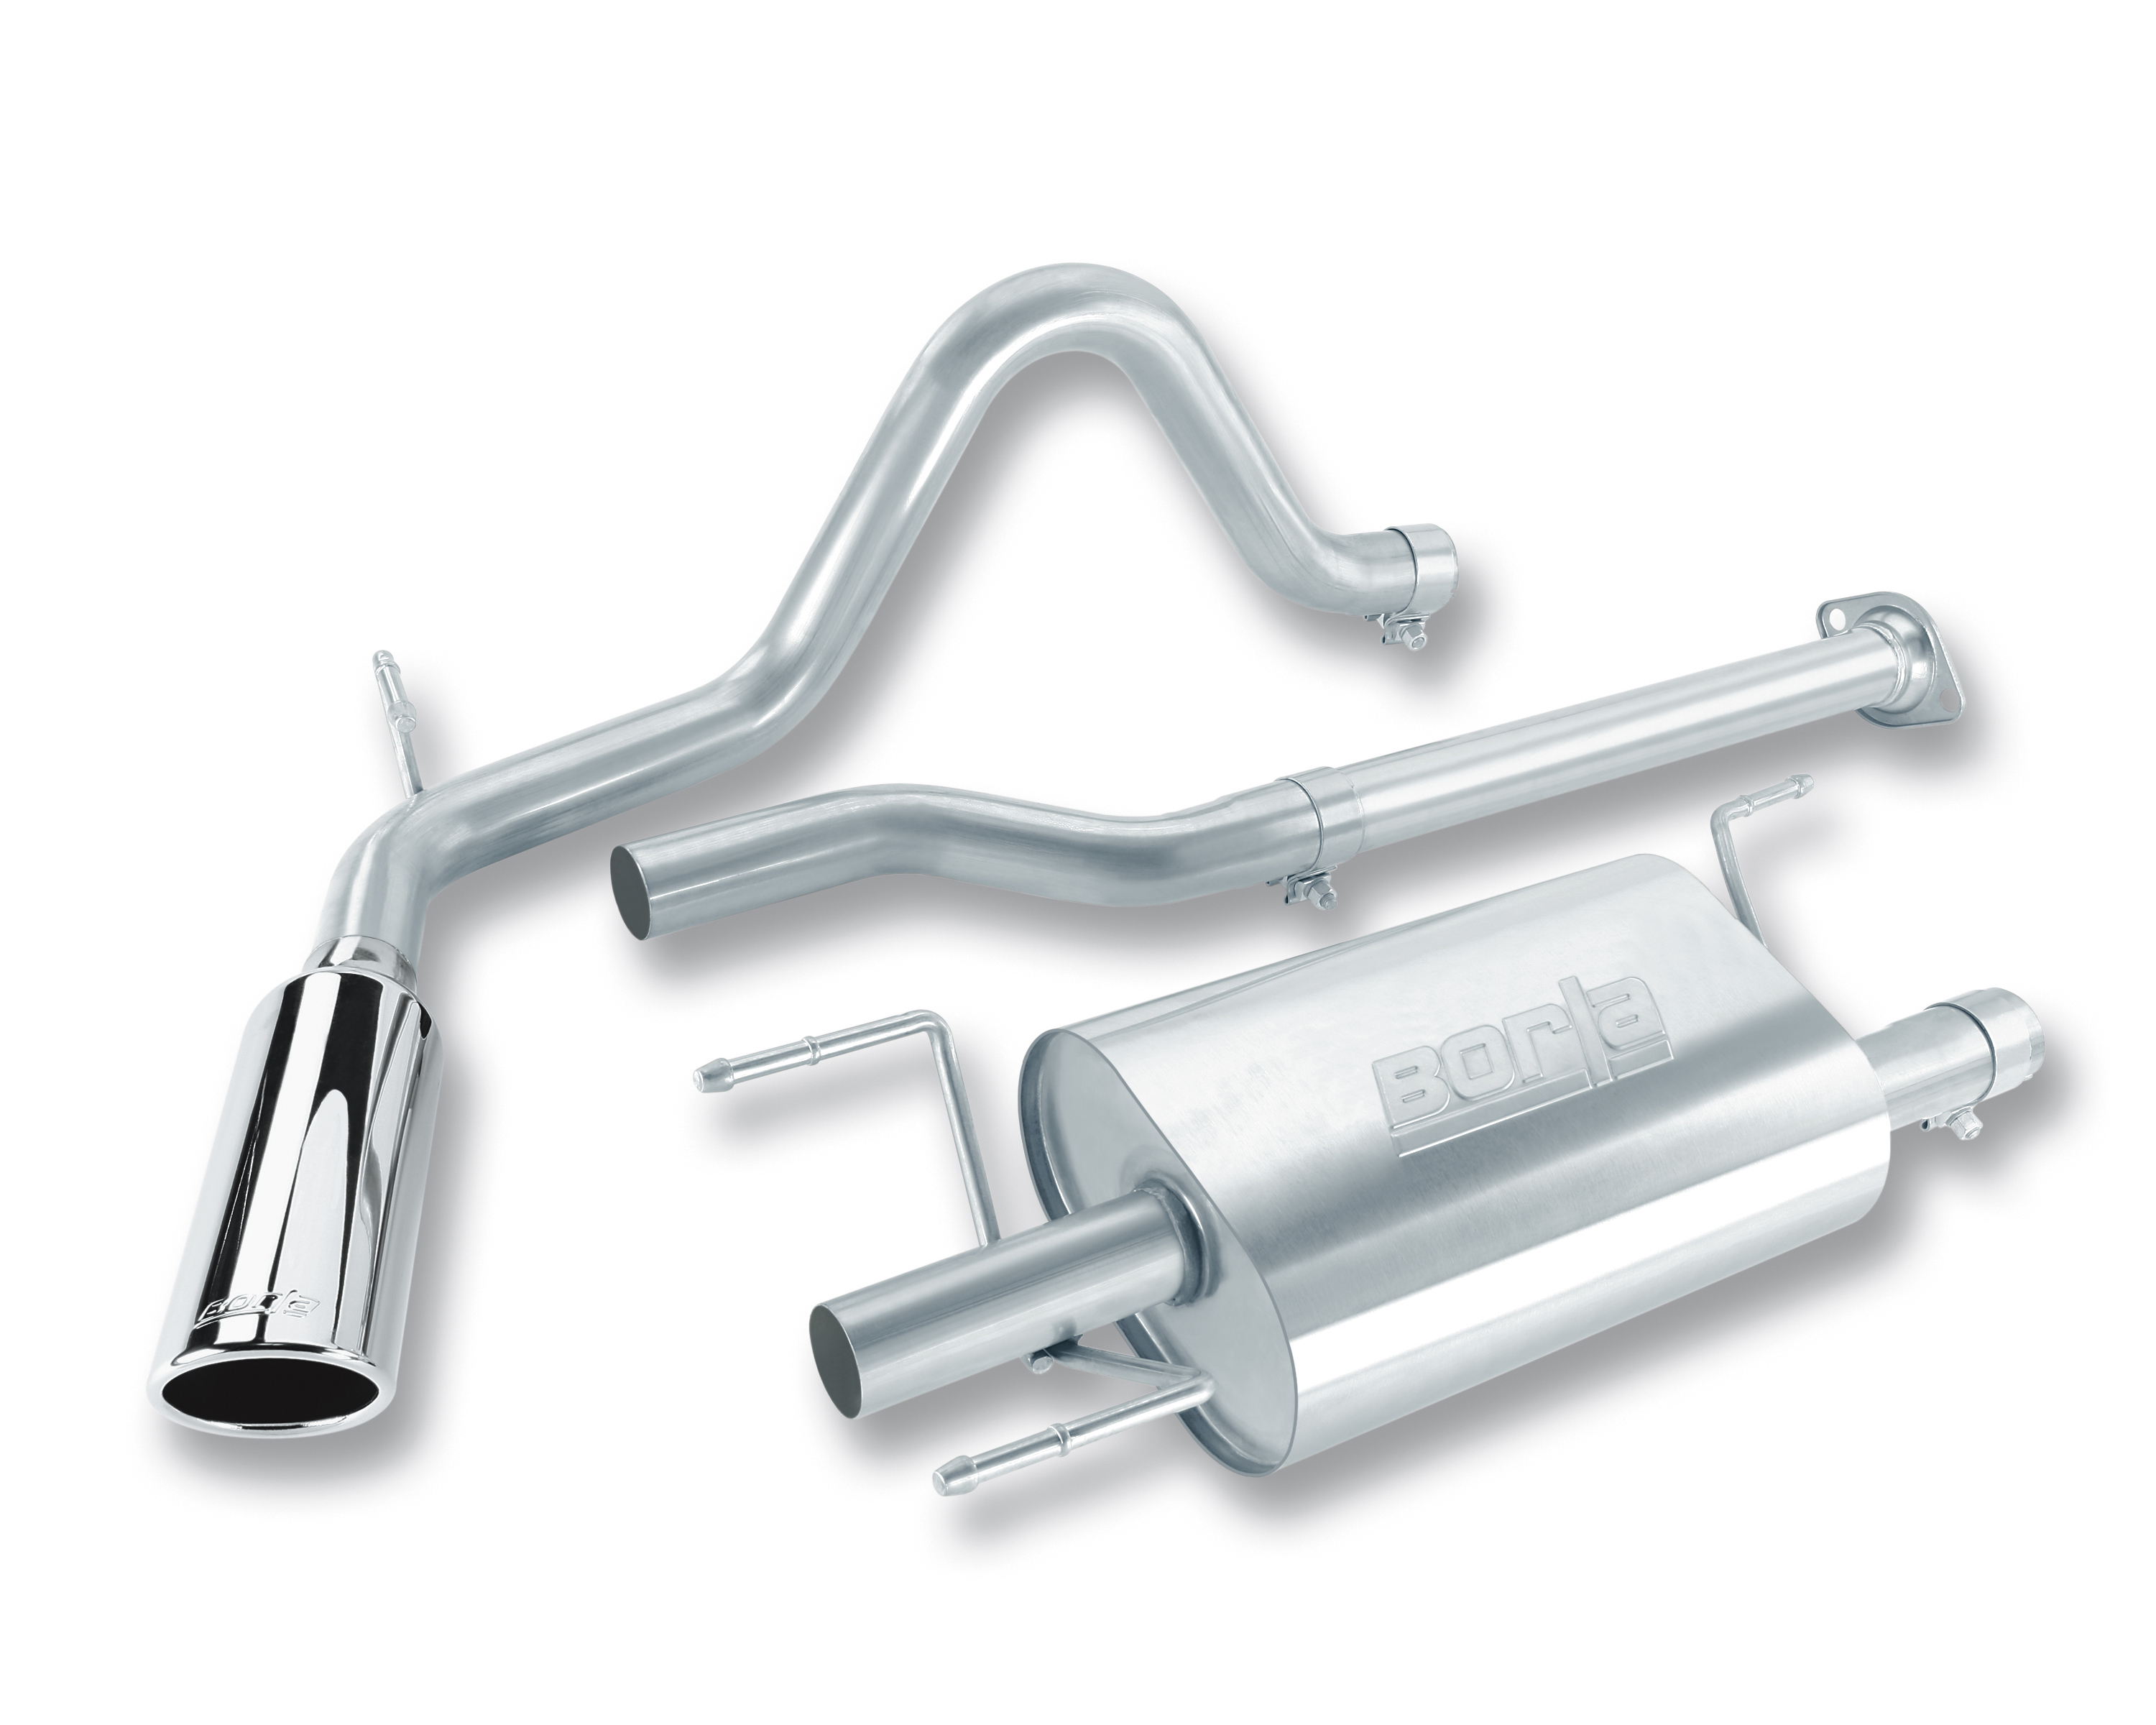 "Toyota Tacoma 2dr 2005-2009 Borla 2.25"" Cat-Back Exhaust System - Single Round Rolled Angle-Cut  Long X Single Round Rolled Angle-Cut Intercooled"" Dia"